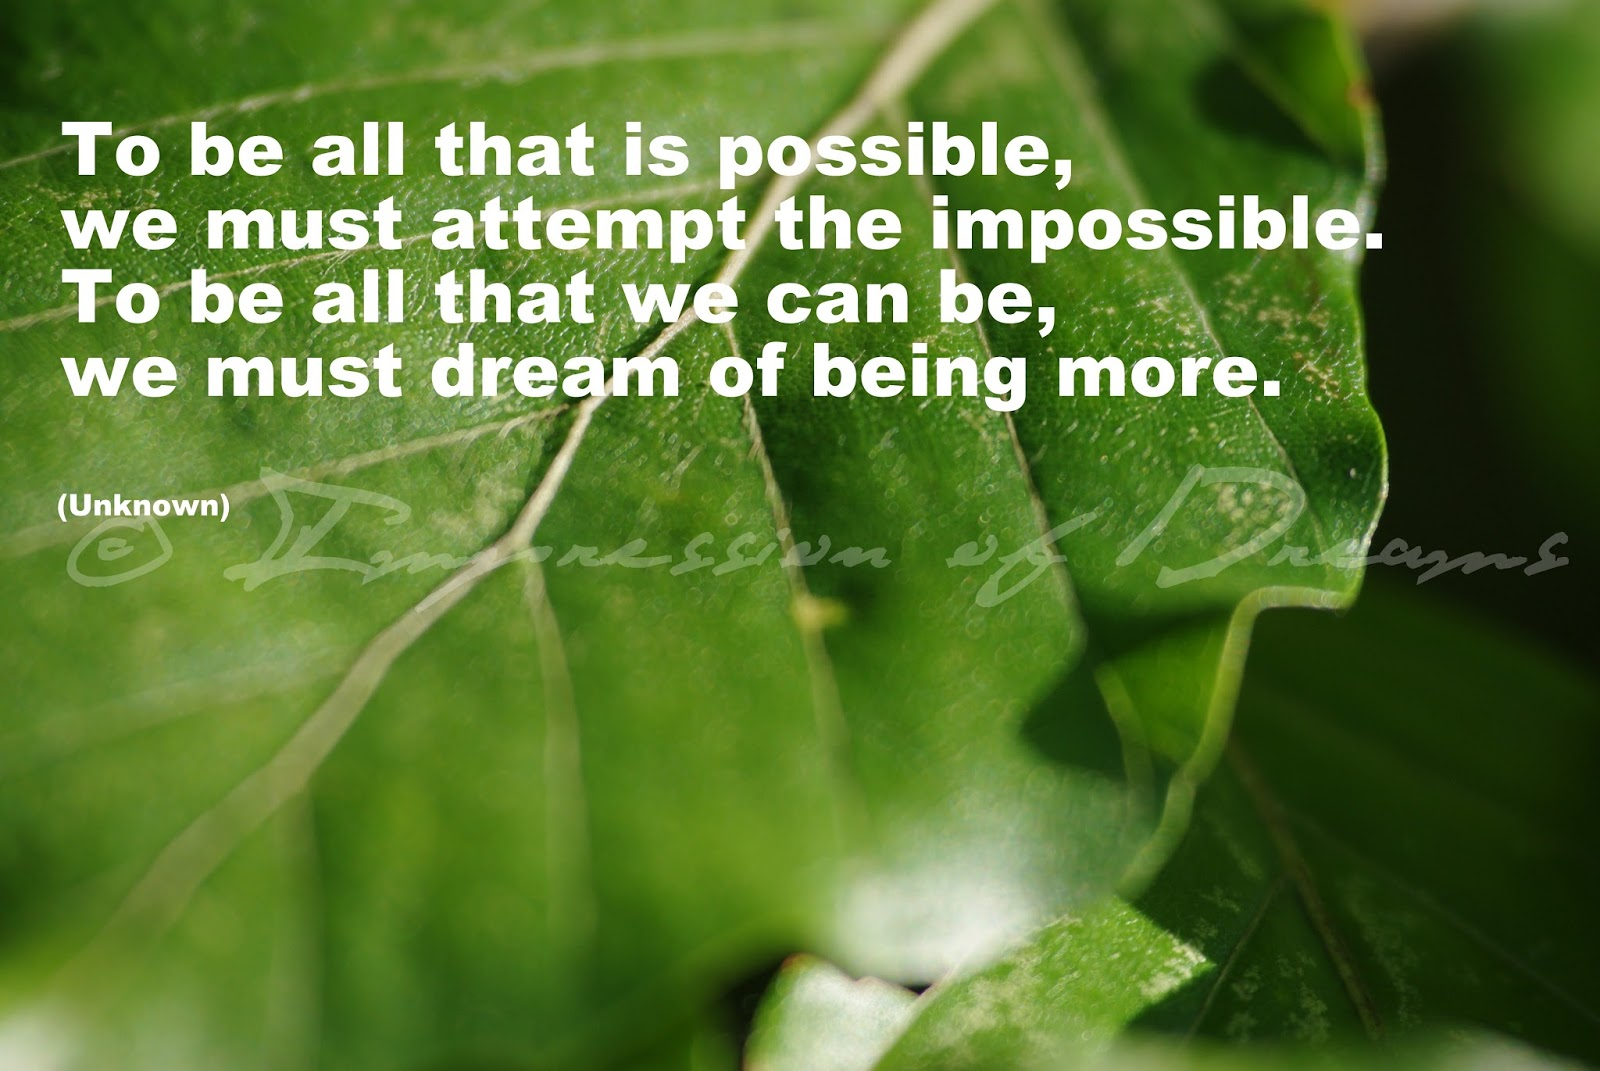 To be all that is possible, we must attempt the impossible. To be all that we can be, we must dream of being more.